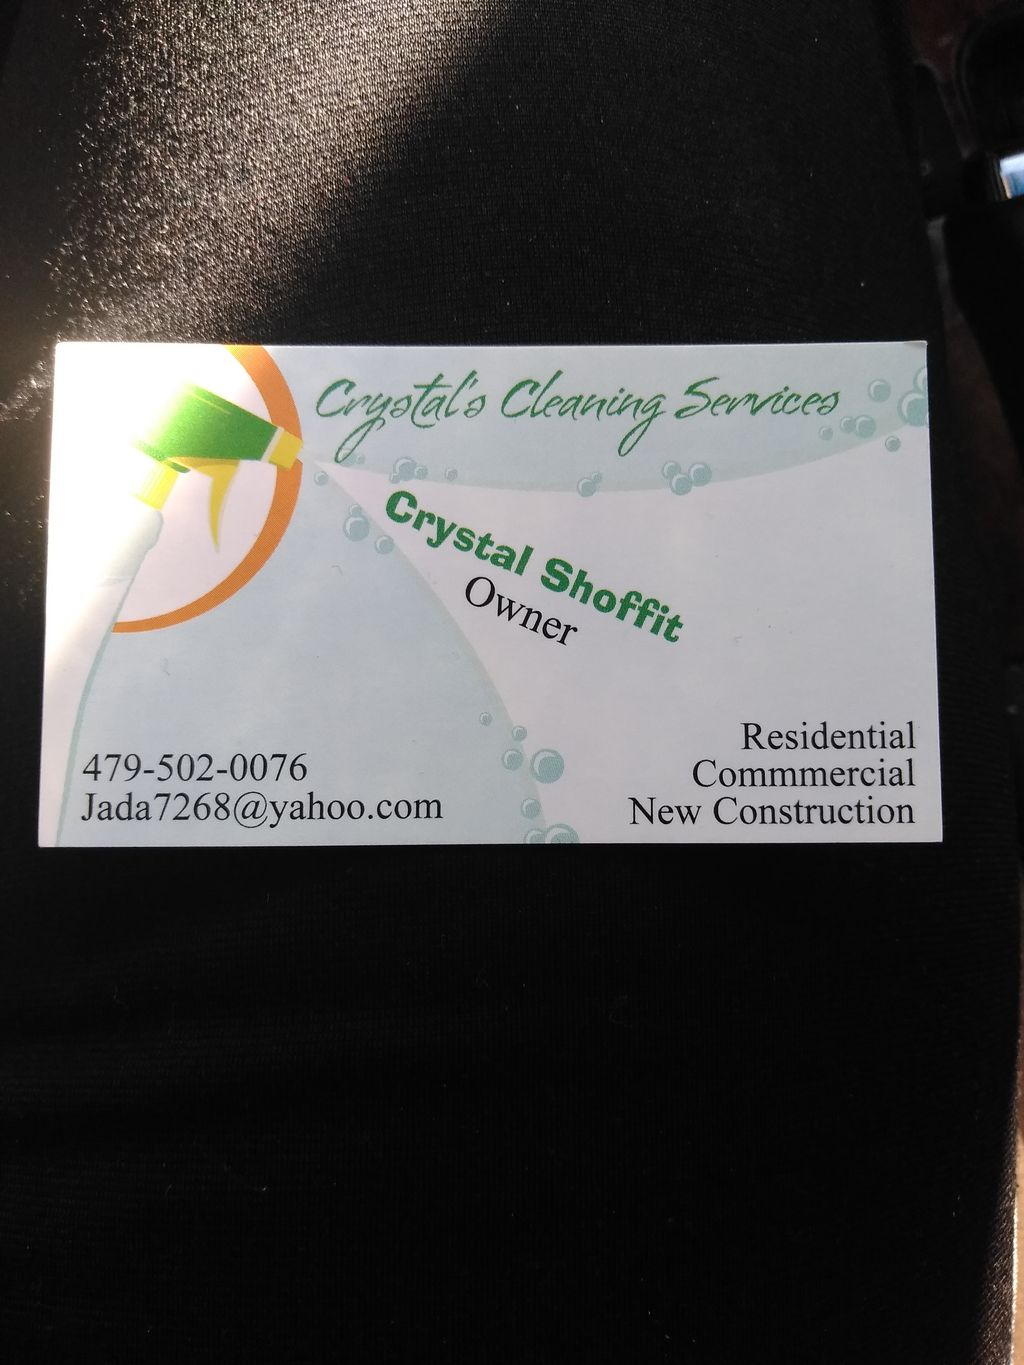 Crystal's Cleaning Services